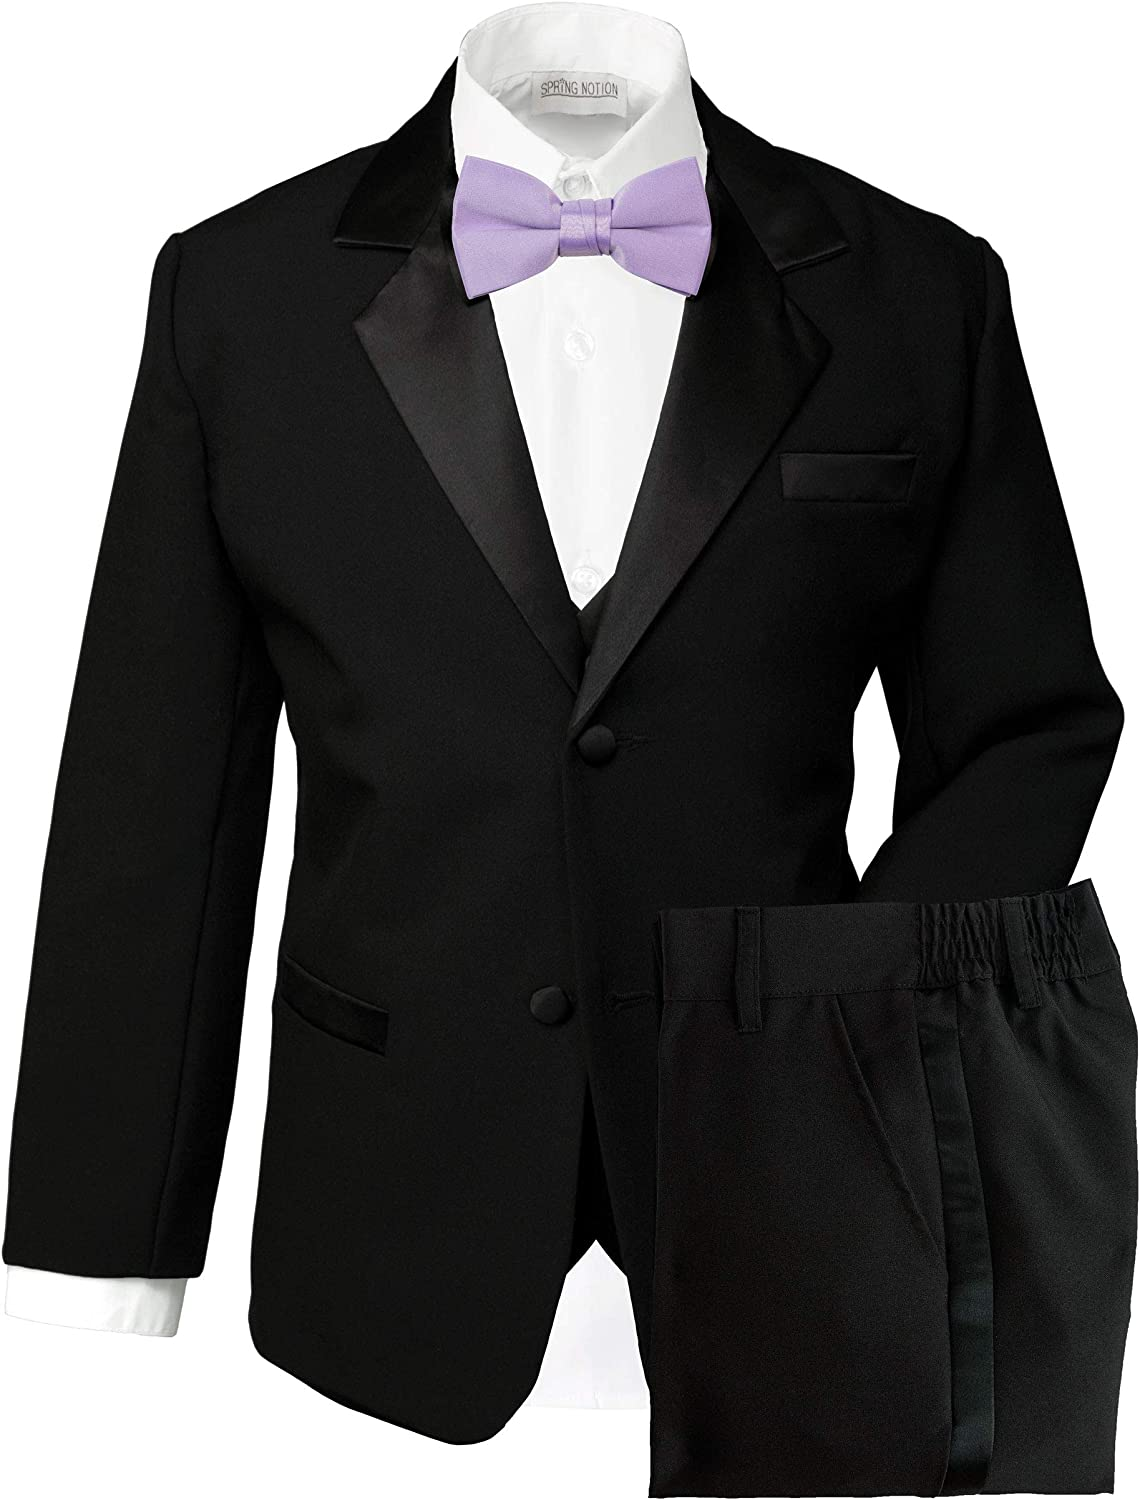 No Tail Spring Notion Boys Classic Fit Tuxedo Set